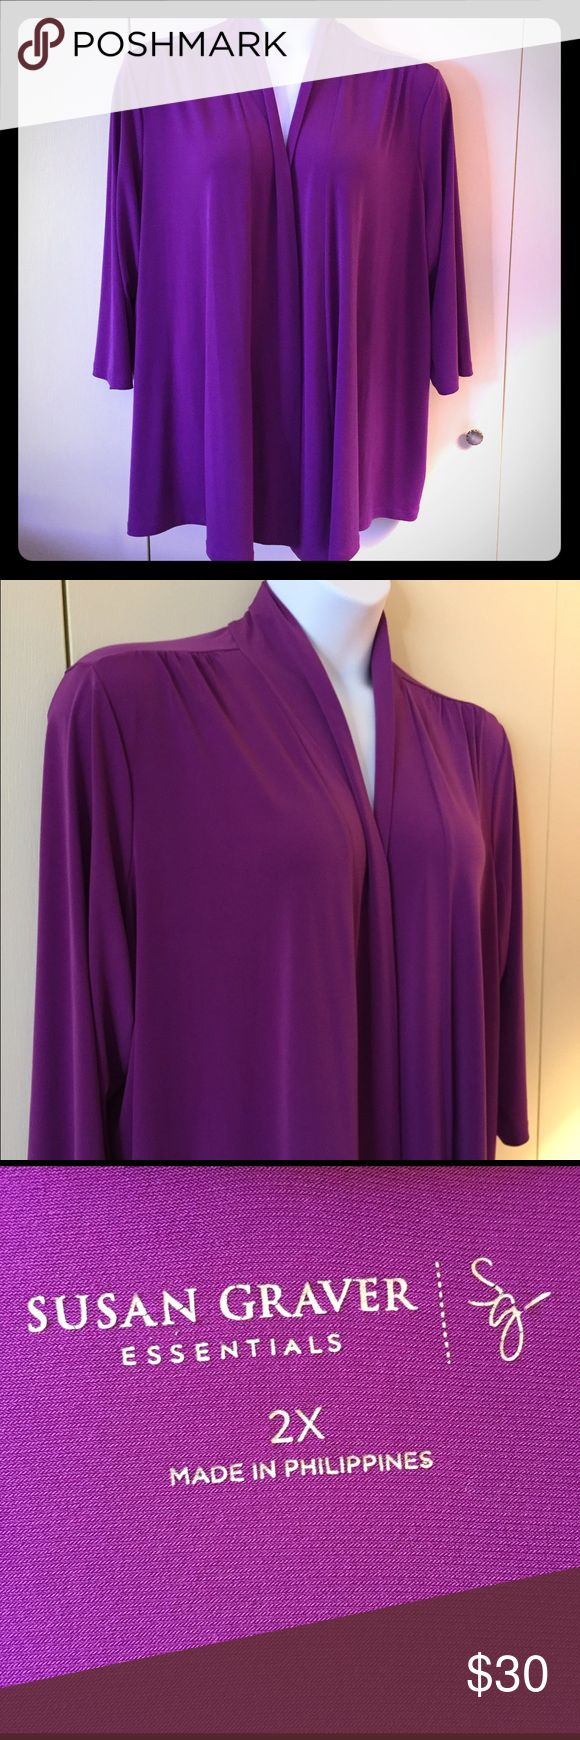 Fuschia Susan Graver Liquid Knit cardigan Gorgeous Susan Graver Essentials Liquid Knit cardigan in fuchsia pink. So classic for the office or dress it up for a night out. Poly/spandex blend in size 2X Susan Graver Sweaters Cardigans